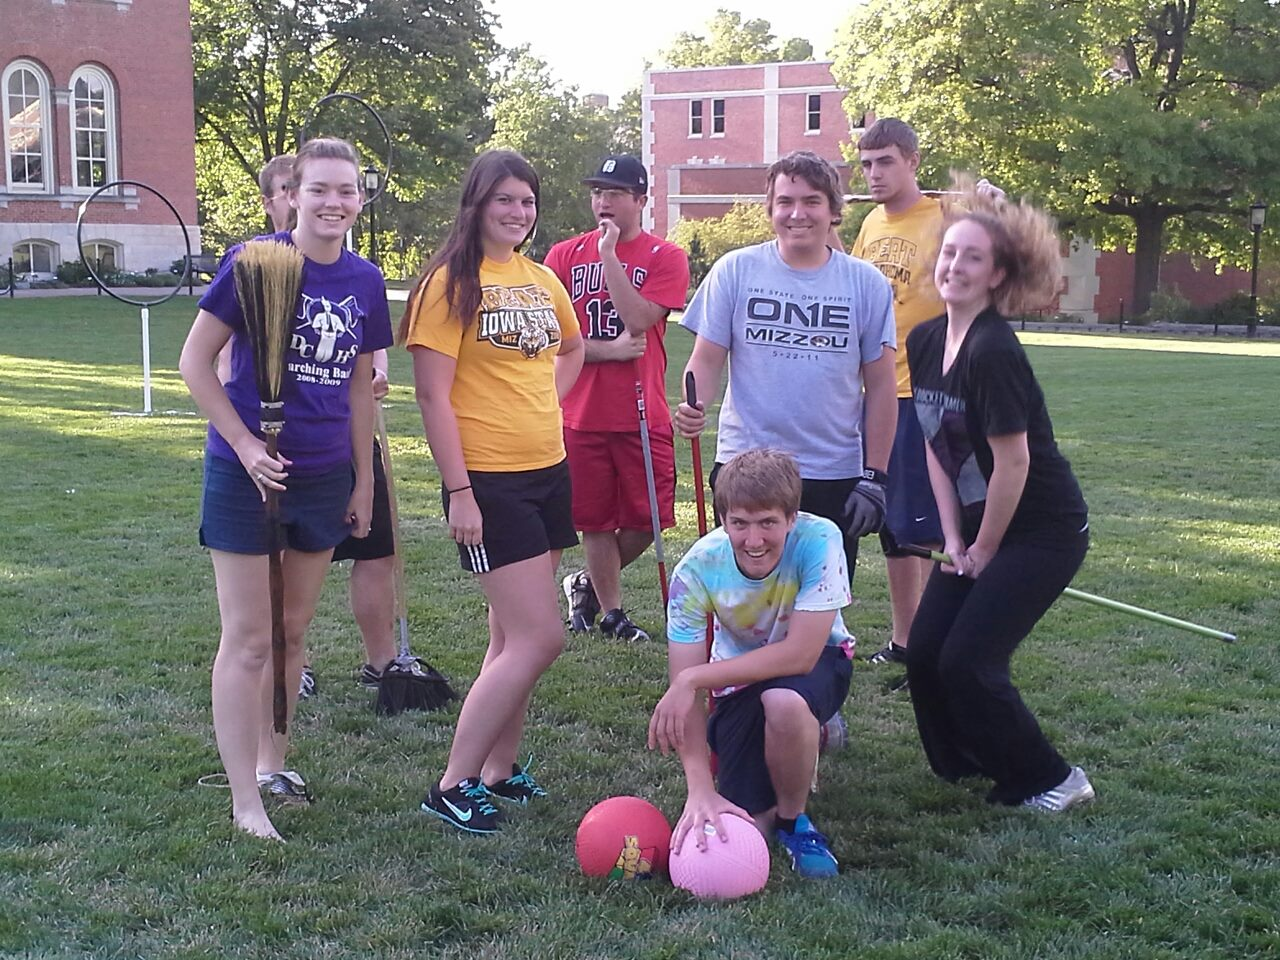 Hell Yeah Quidditch Team, Hell yeah!